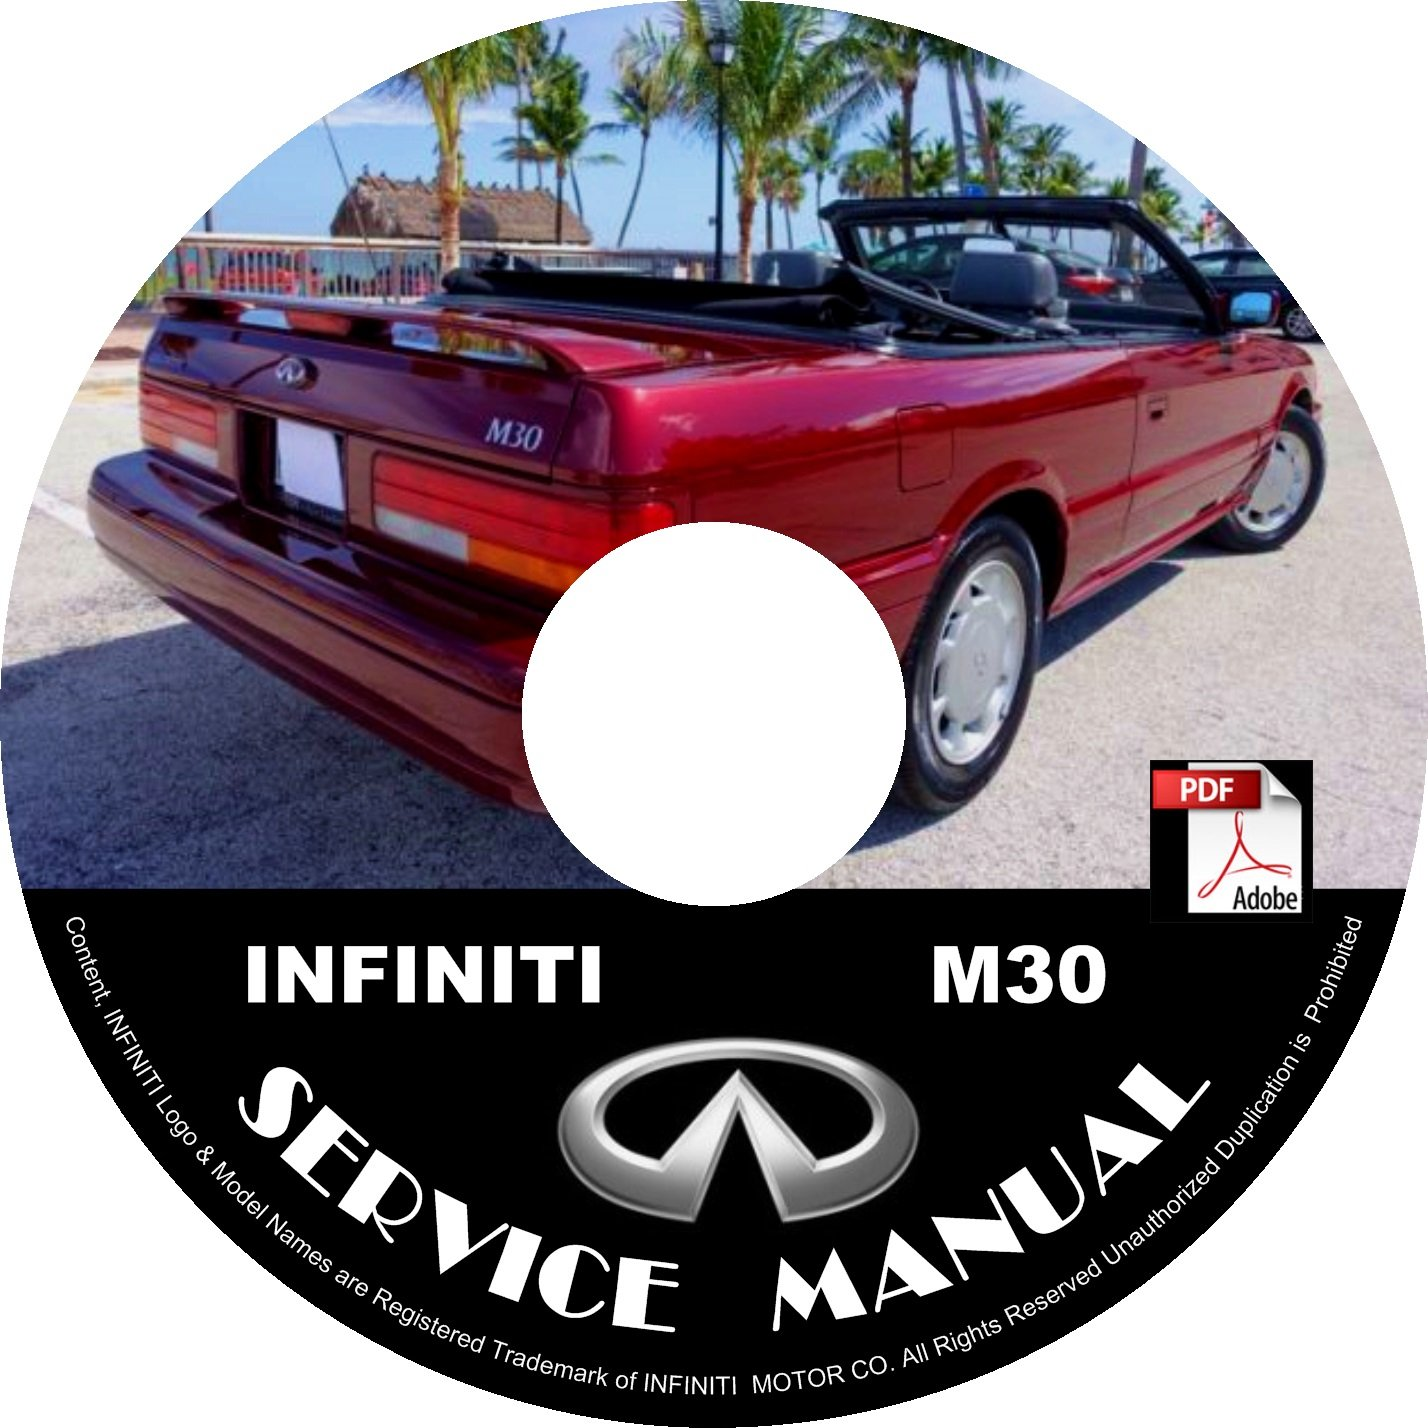 1991 Infiniti M30 Oem Factory Service Repair Shop Manual